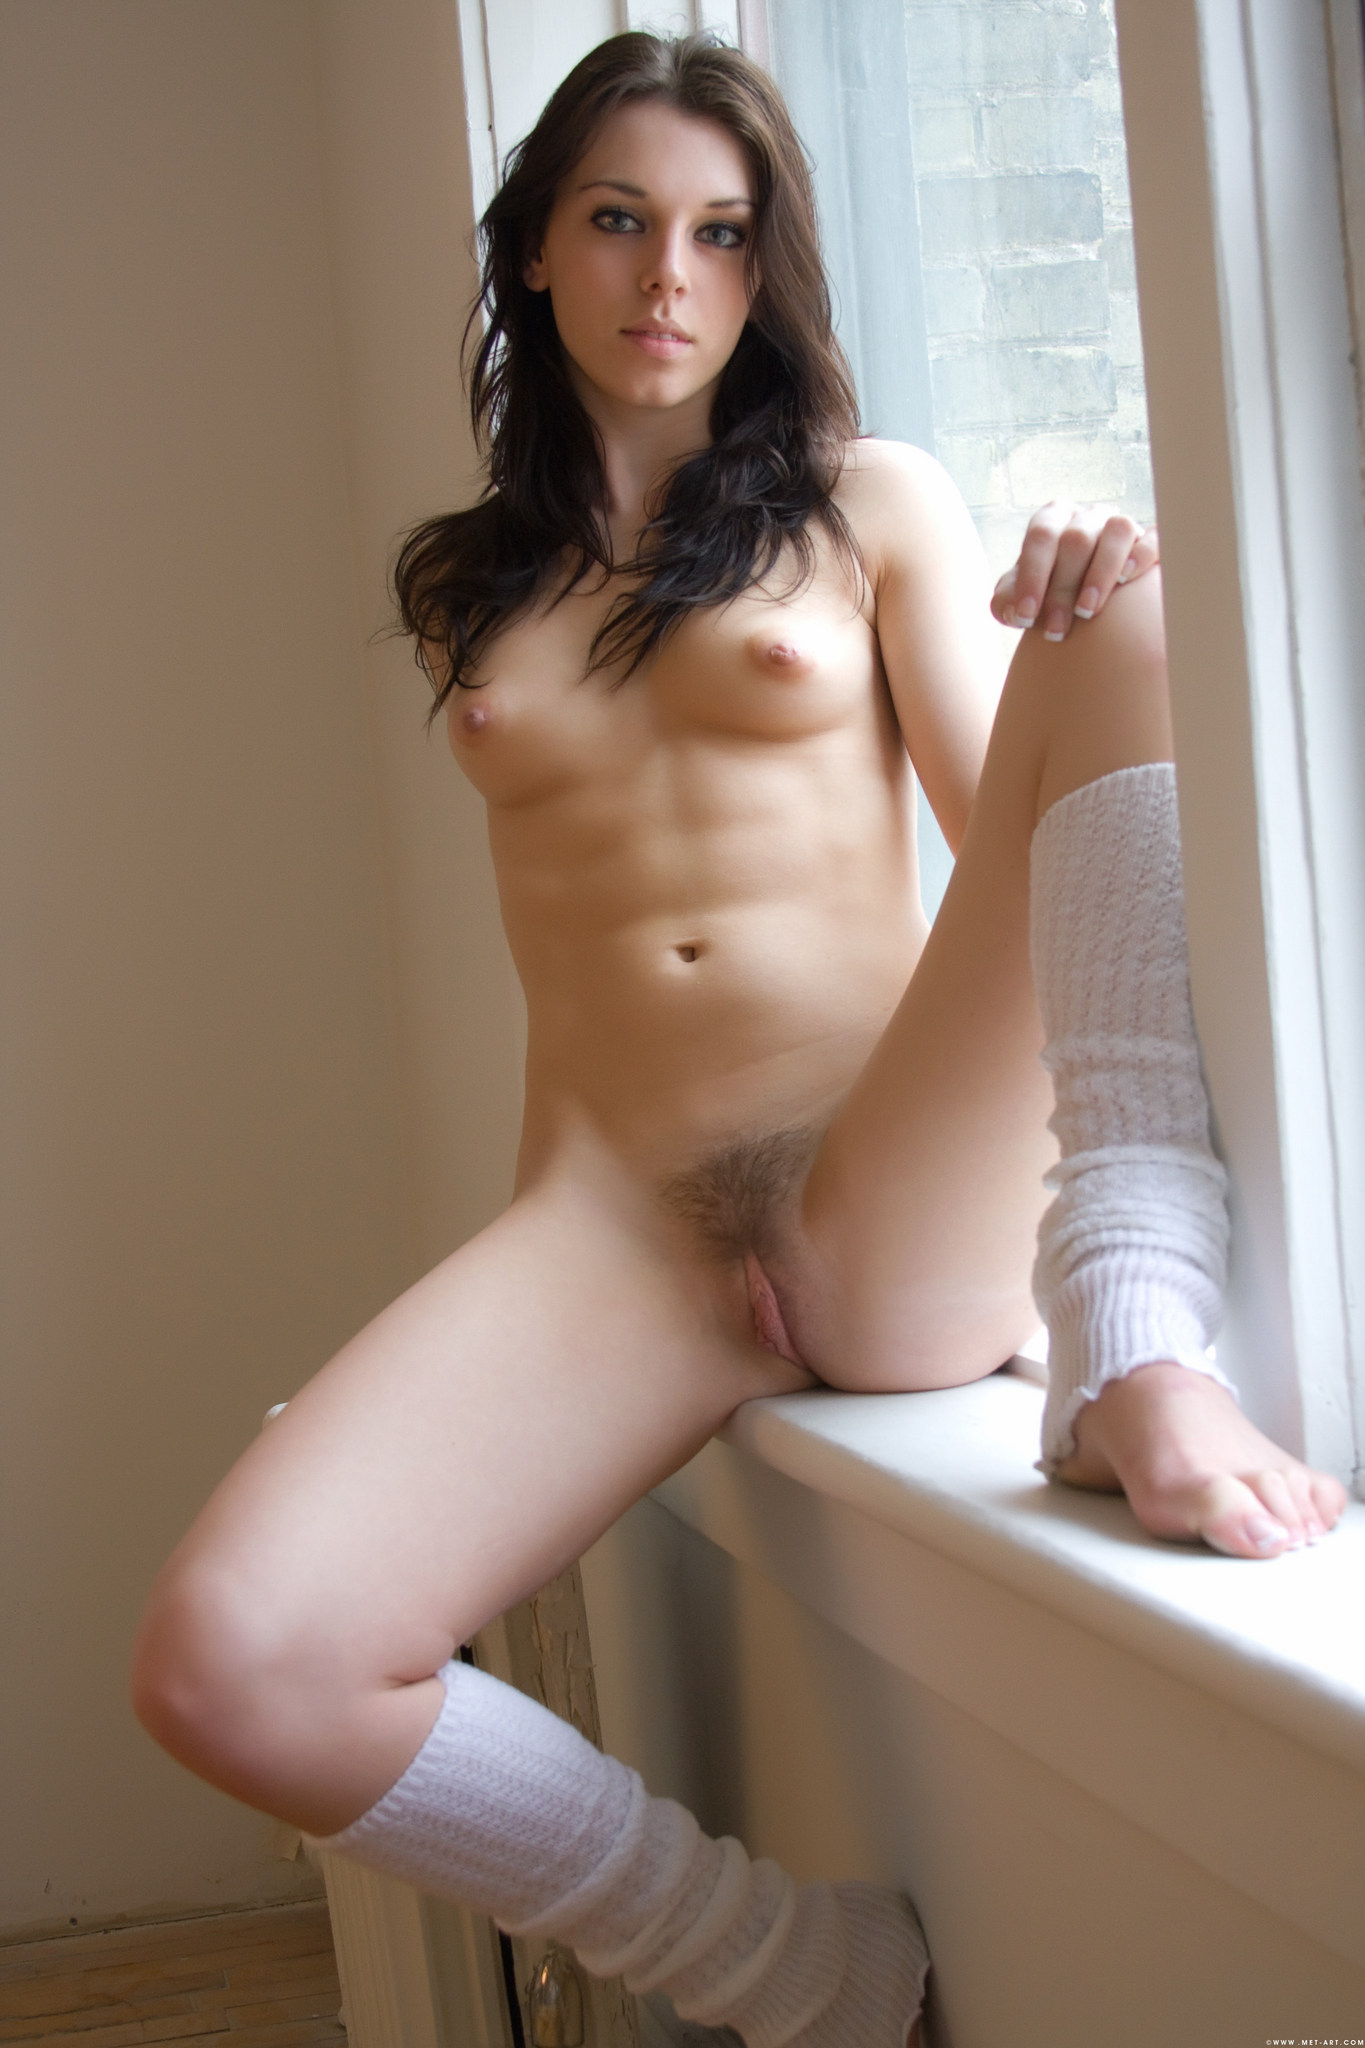 Voyeur 666 inviting look on floating nudist girl 3